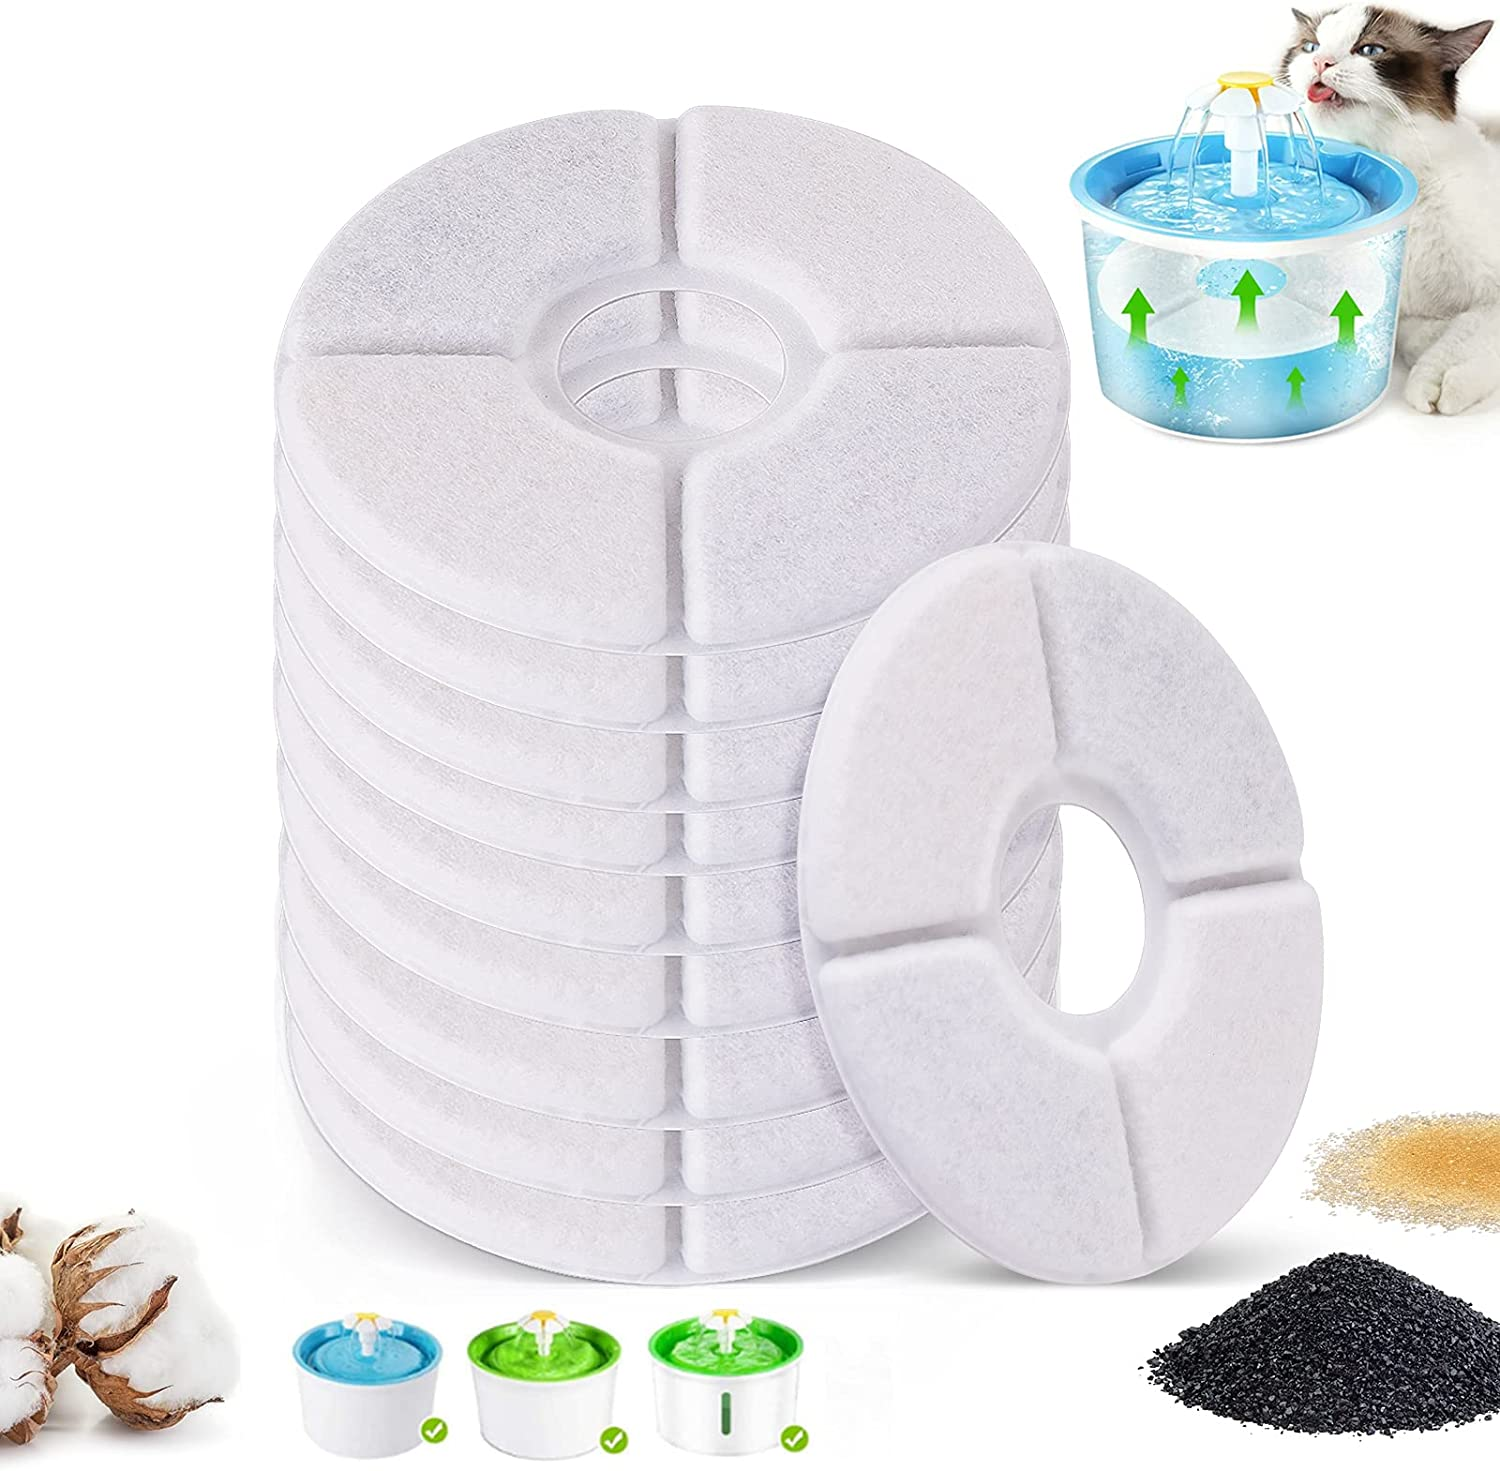 Molain 10Pcs Cat Water Fountain Filter Round Wa Las Vegas Mall Max 82% OFF Dog Replacement